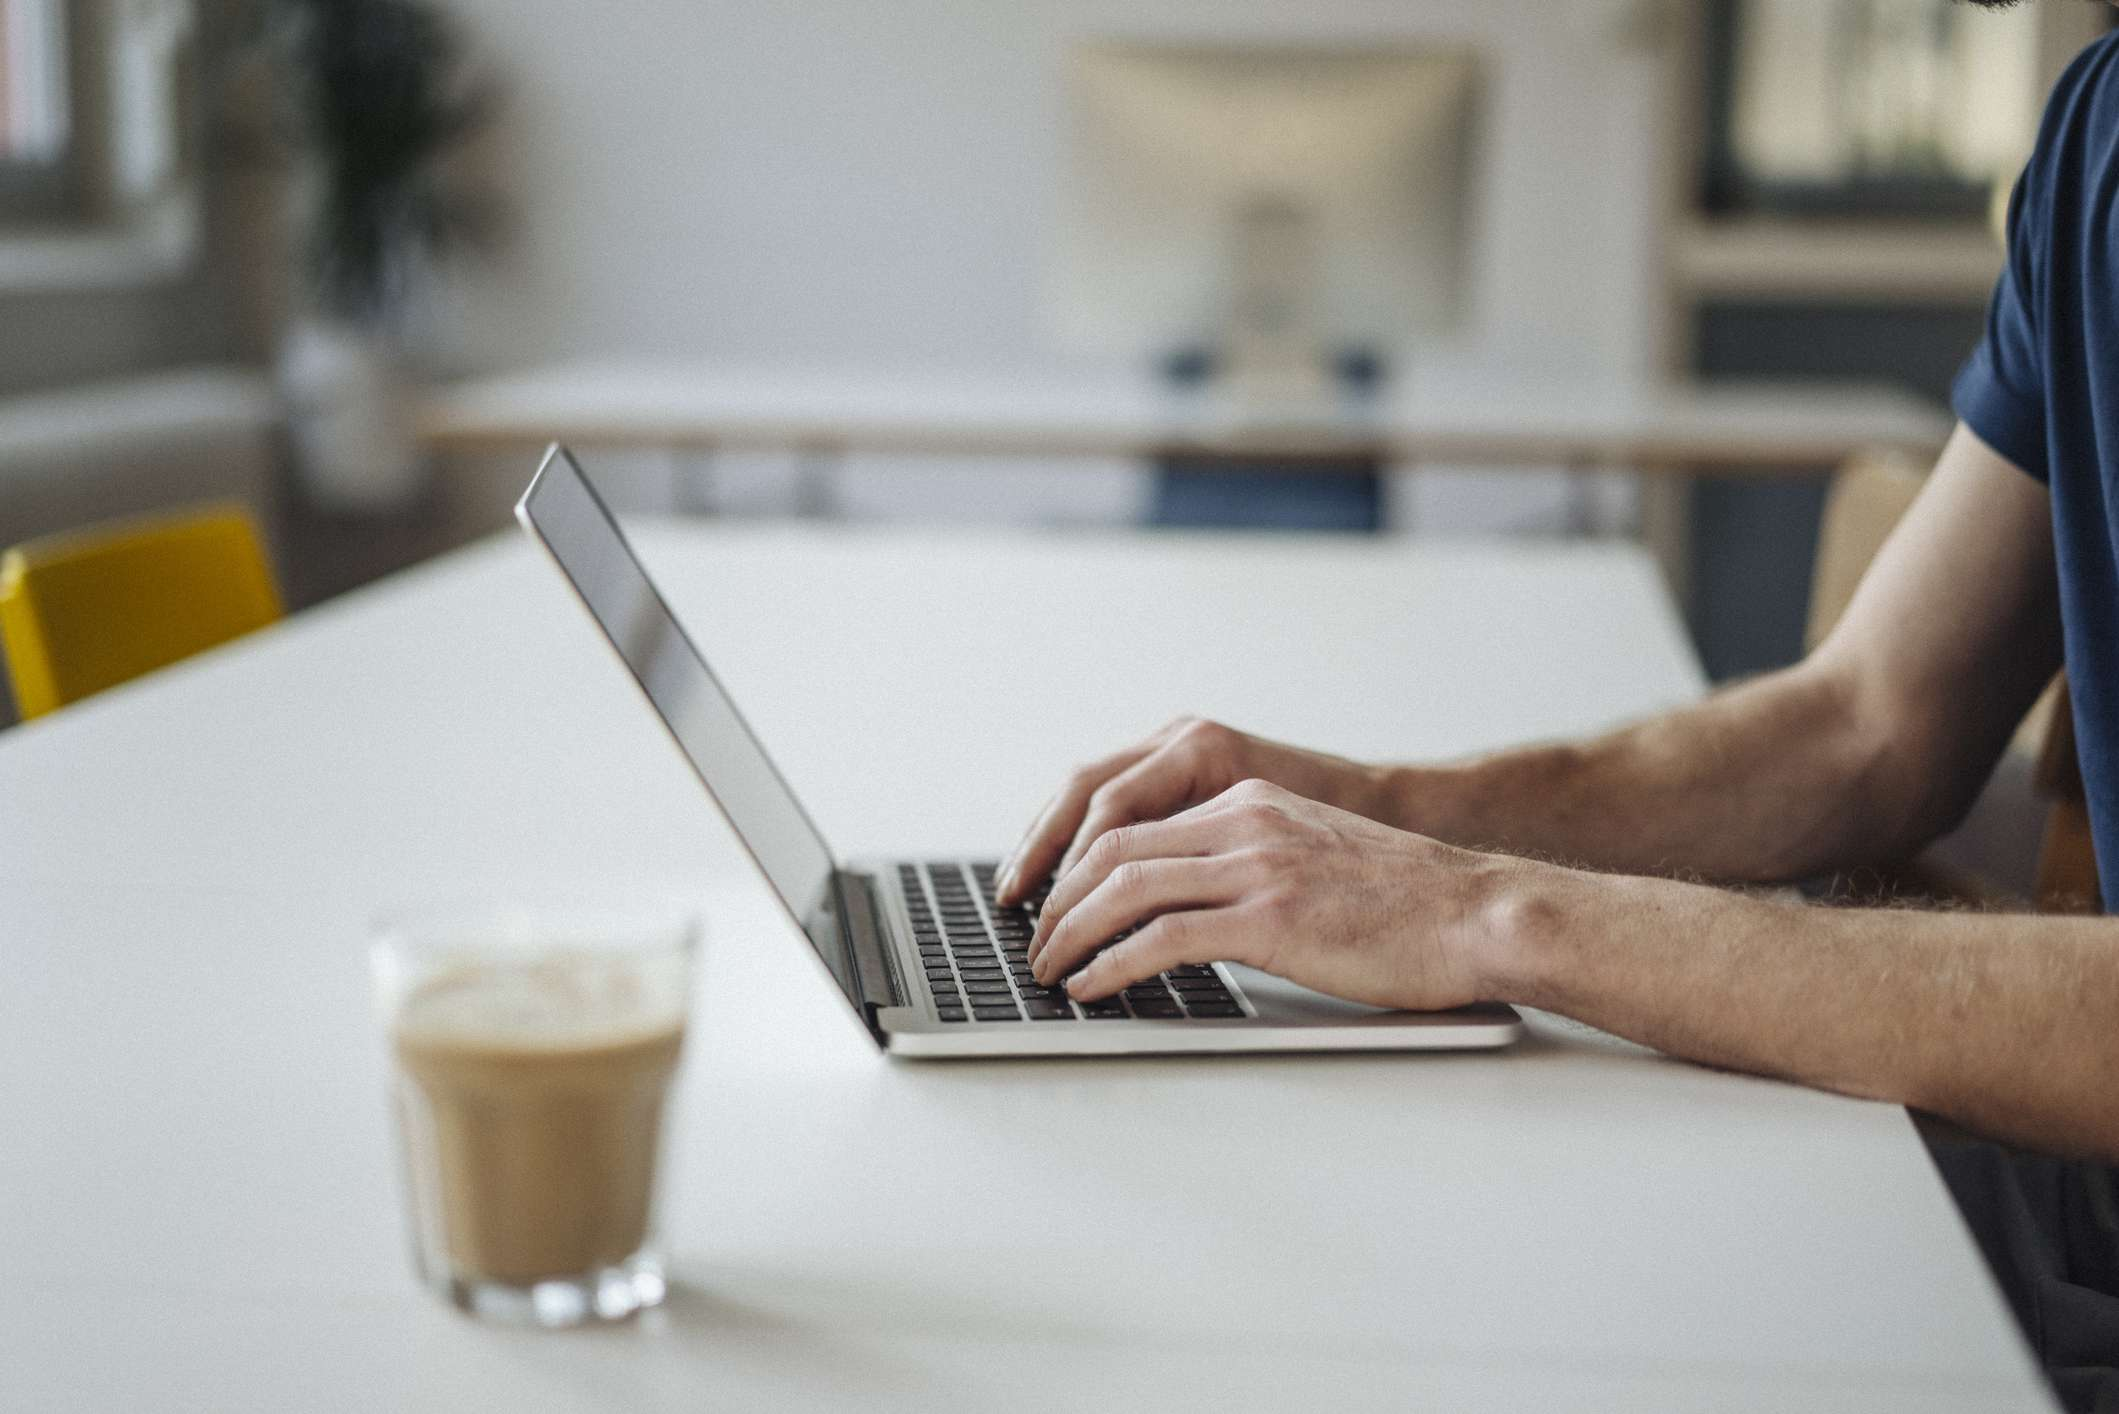 Man typing on laptop in coffee shop